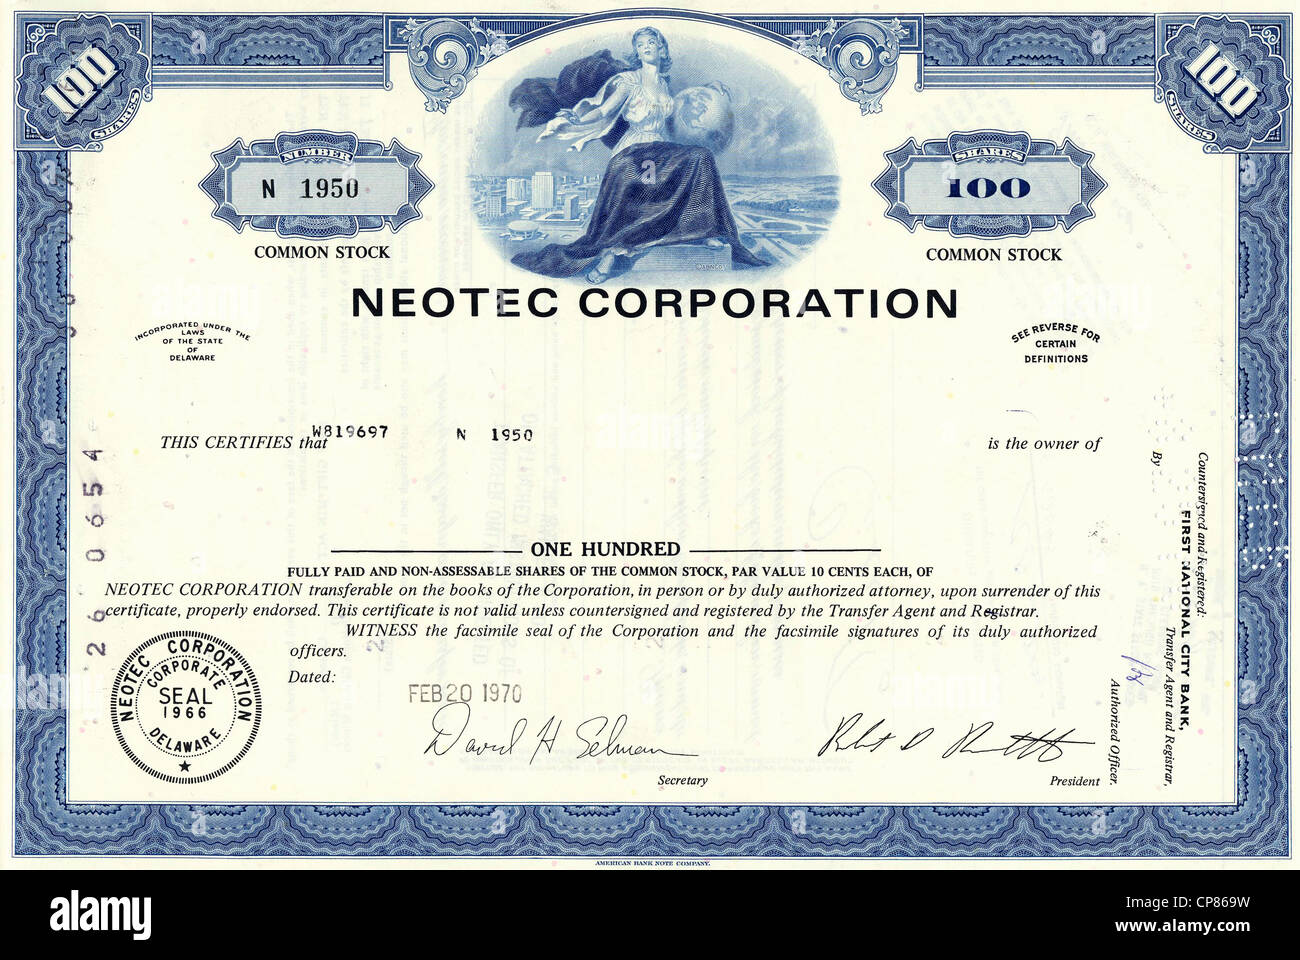 Historical stock certificate, Neotec Corporation, infrared technology for industrial and agricultural feed, Delaware, - Stock Image